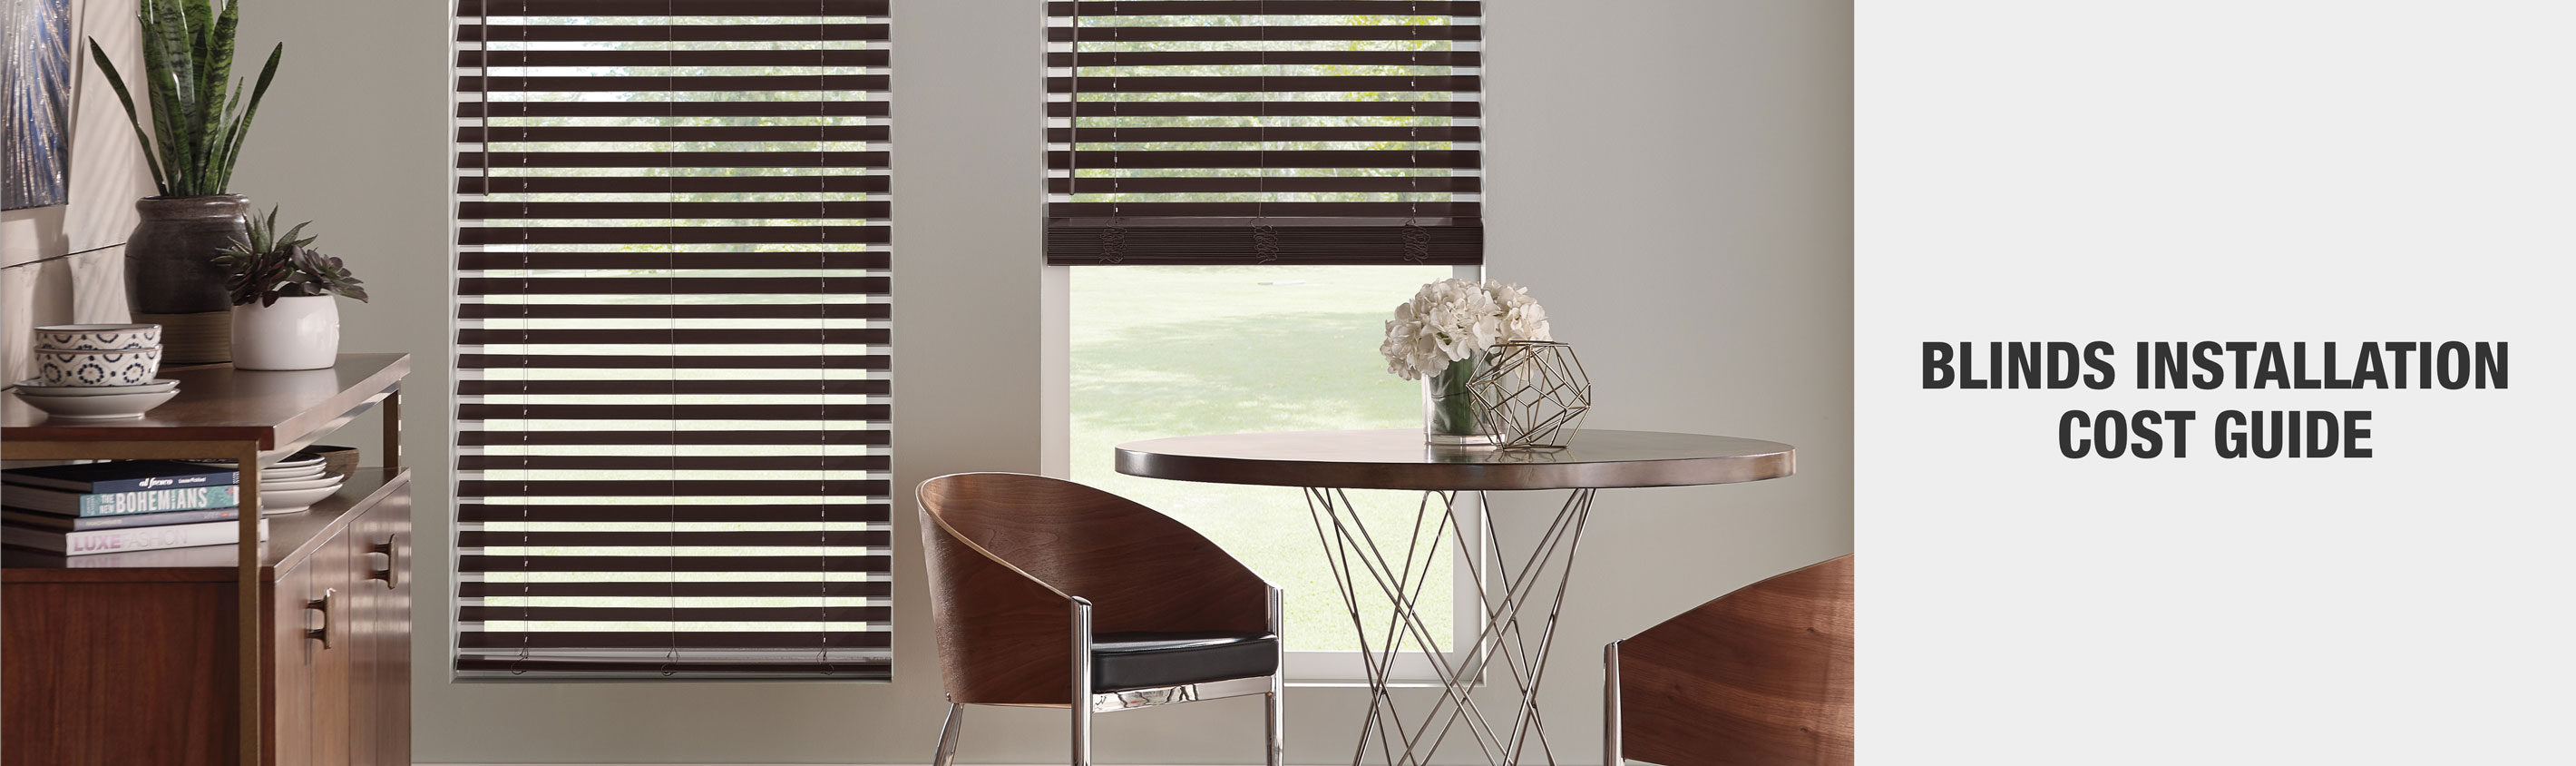 Blinds Installation cost guide - free in-store consultation